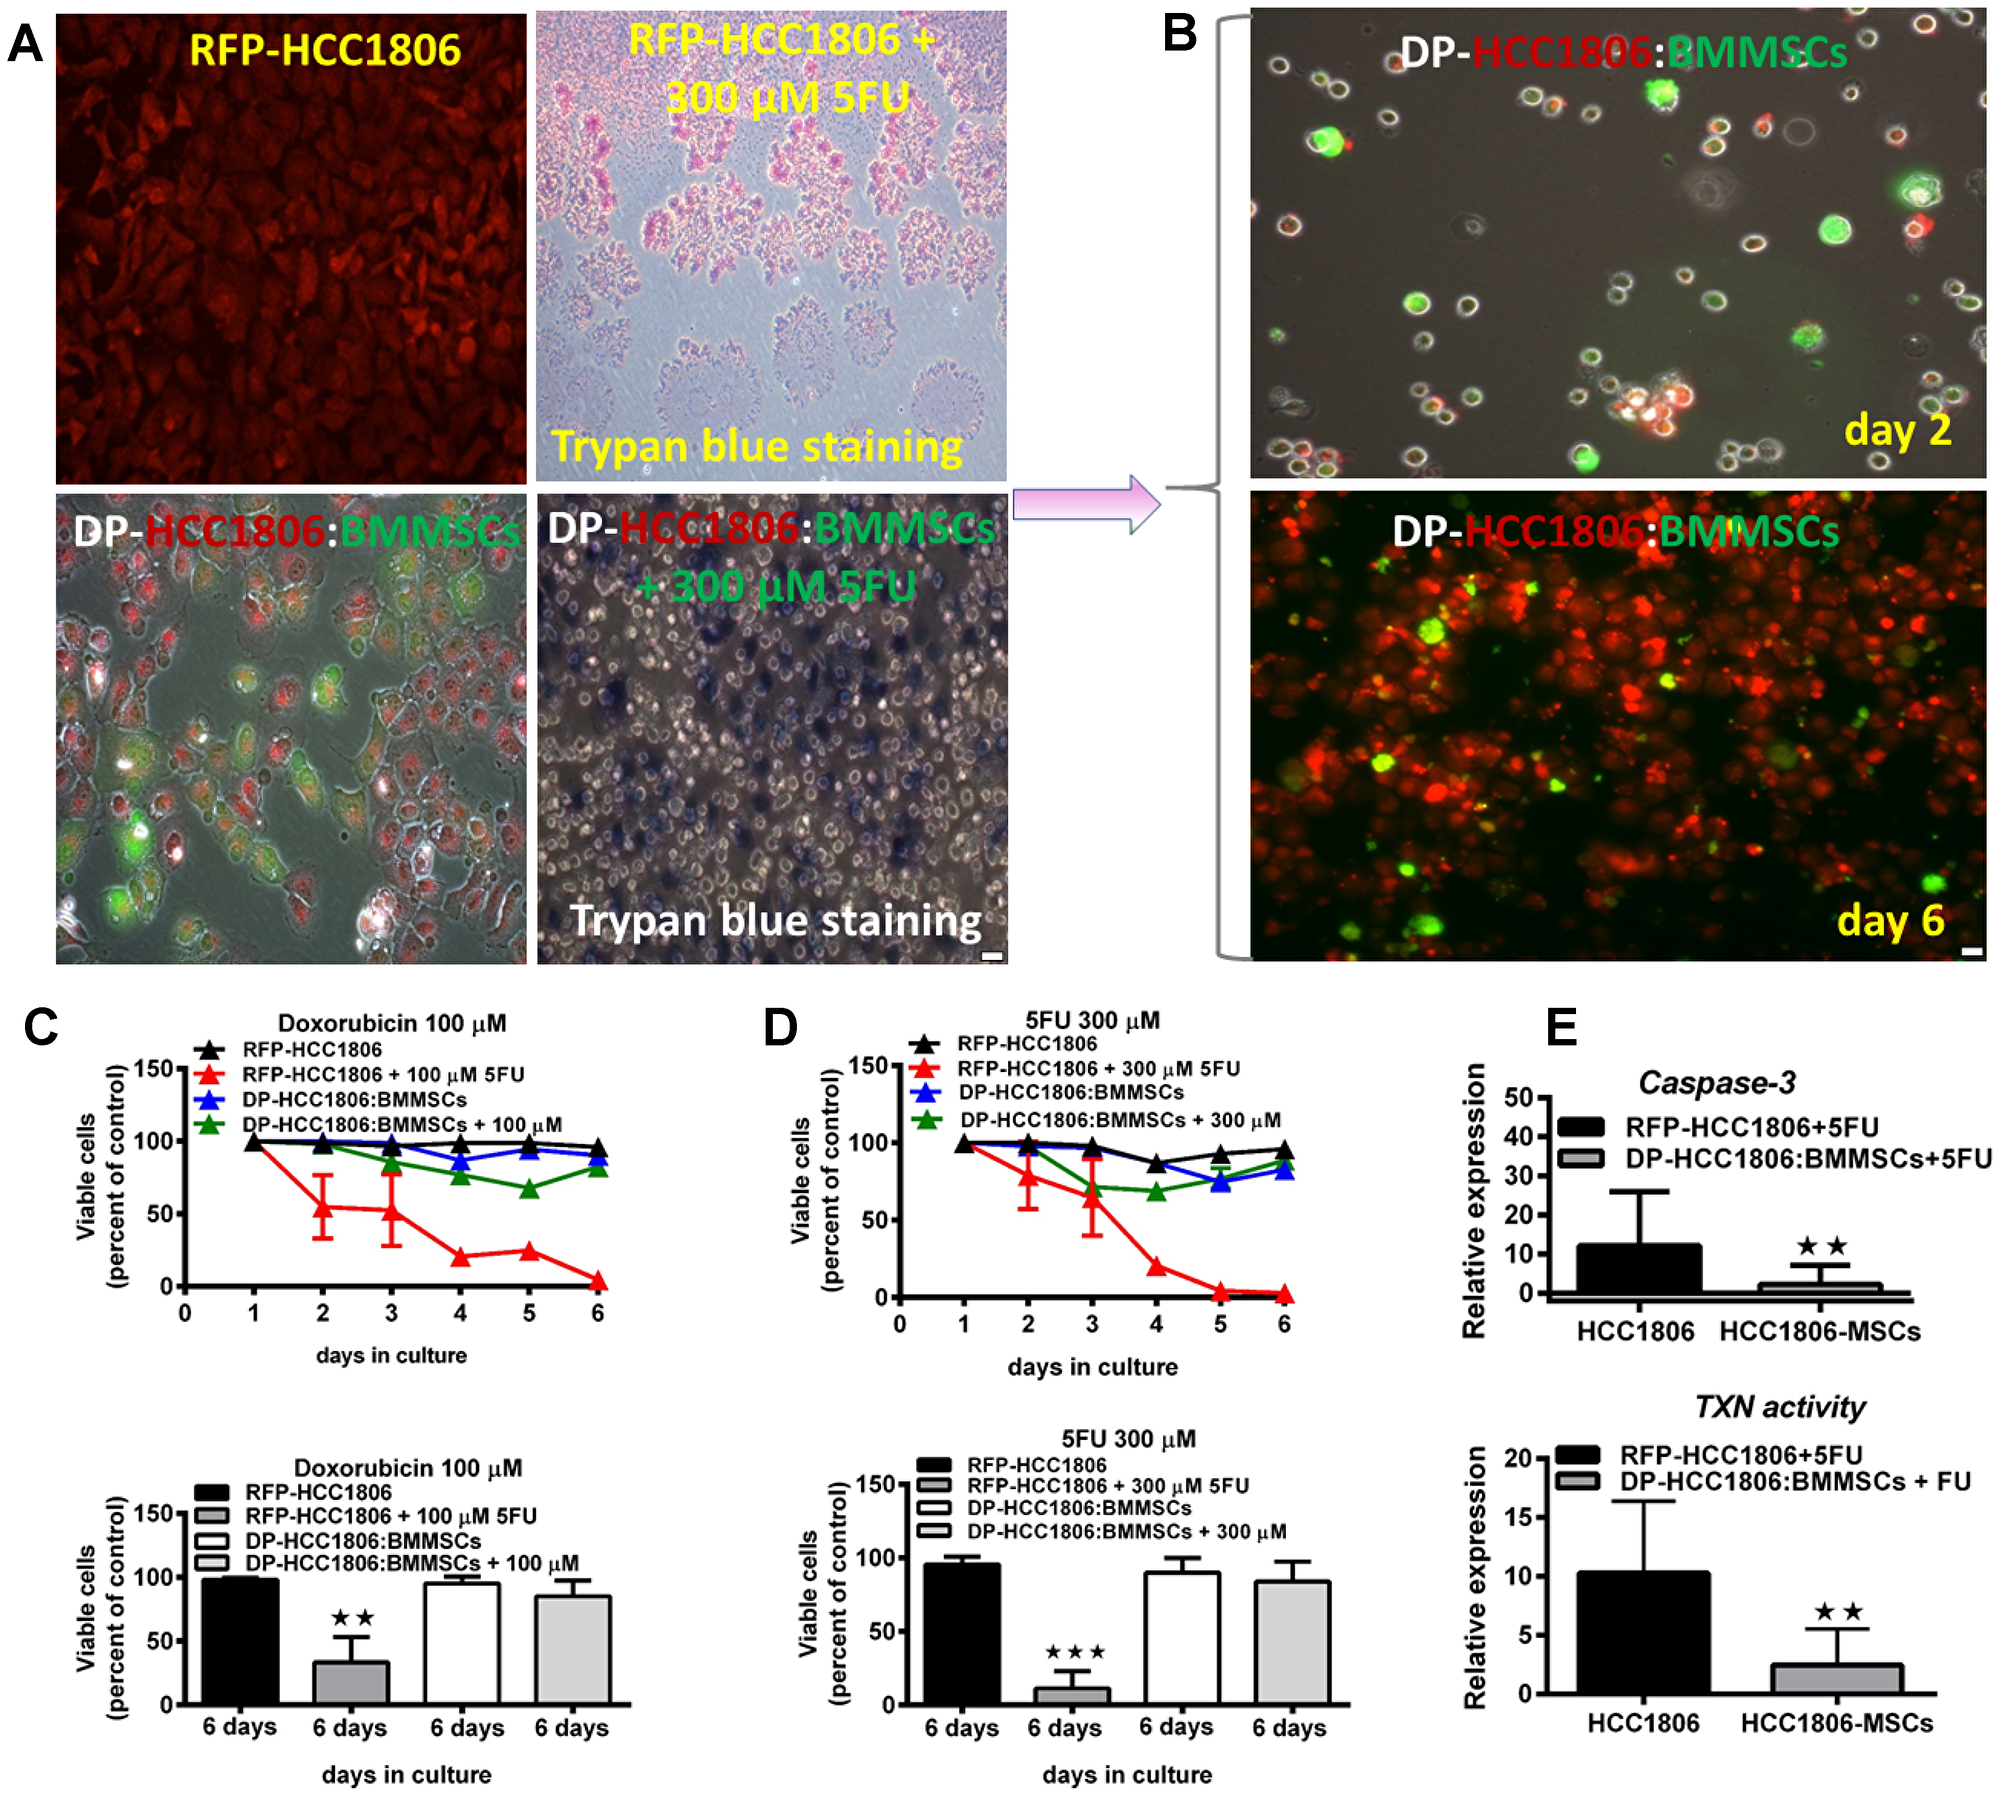 Increased cell viability and reduced cytotoxicity underlie chemoresistance to doxorubicin and 5FU.